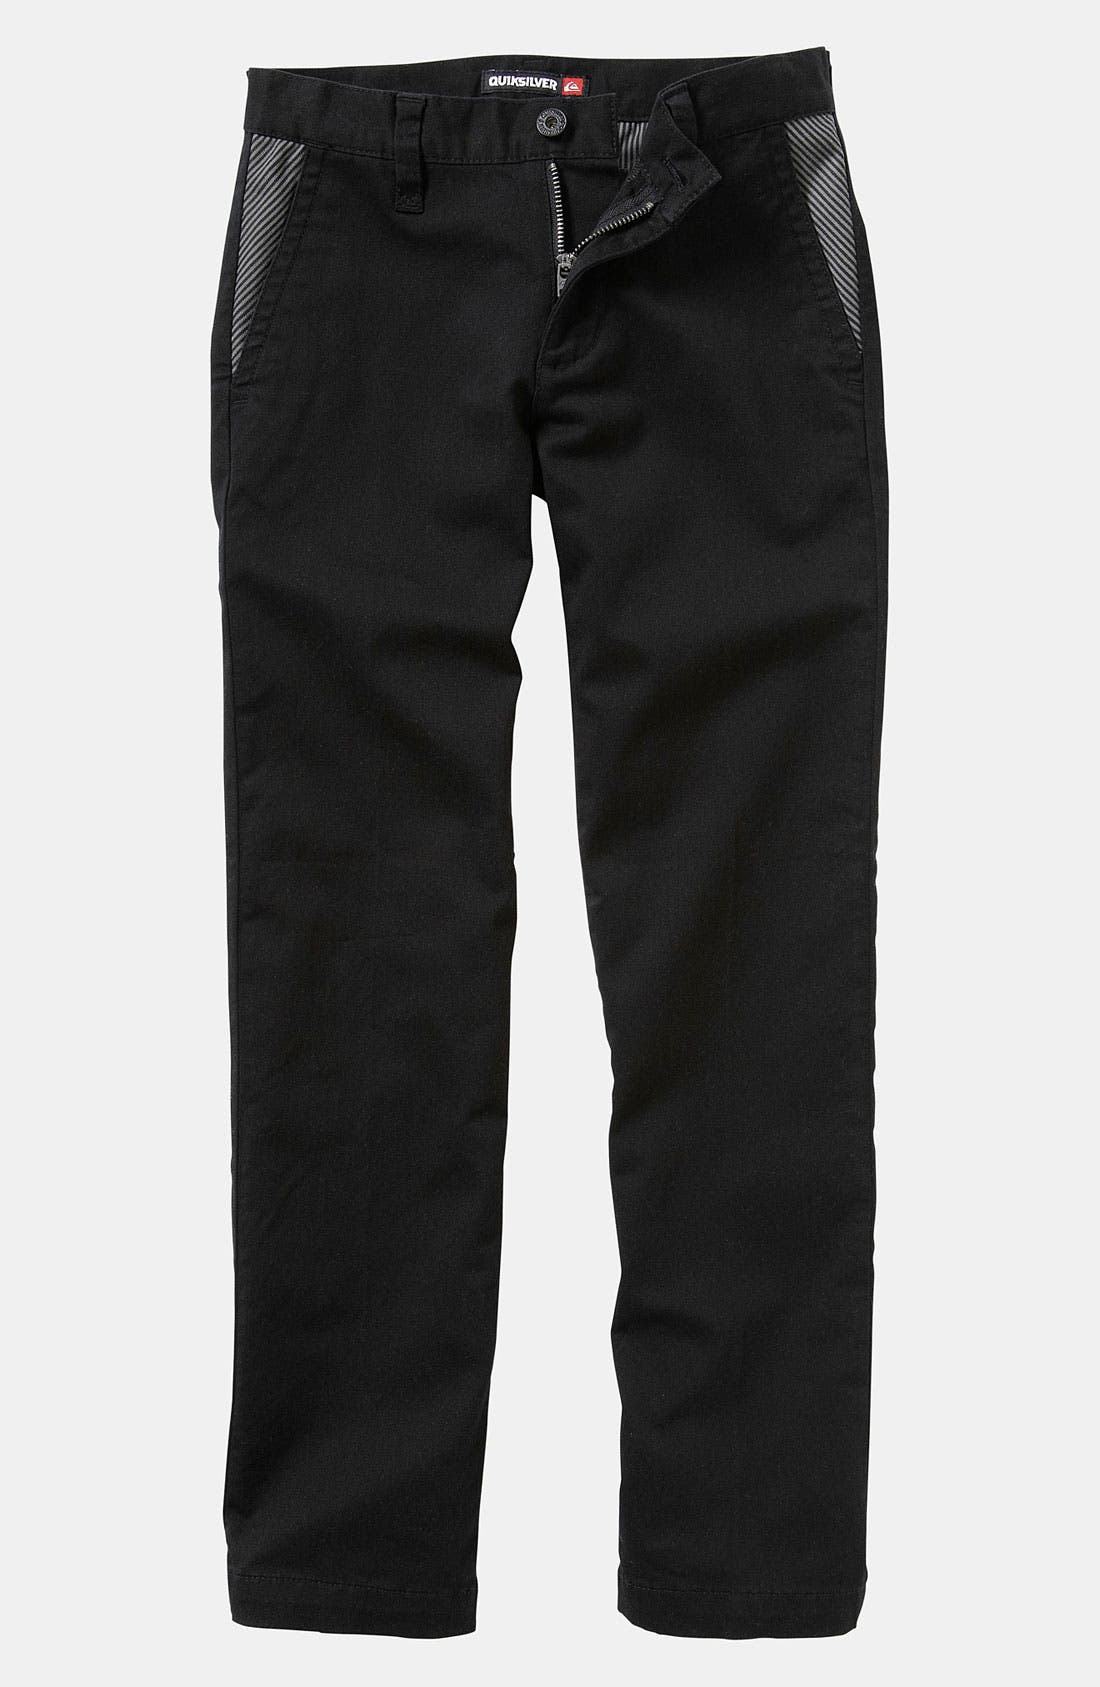 Alternate Image 1 Selected - Quiksilver 'Box Wire' Slim Straight Leg Chino Pants (Big Boys)